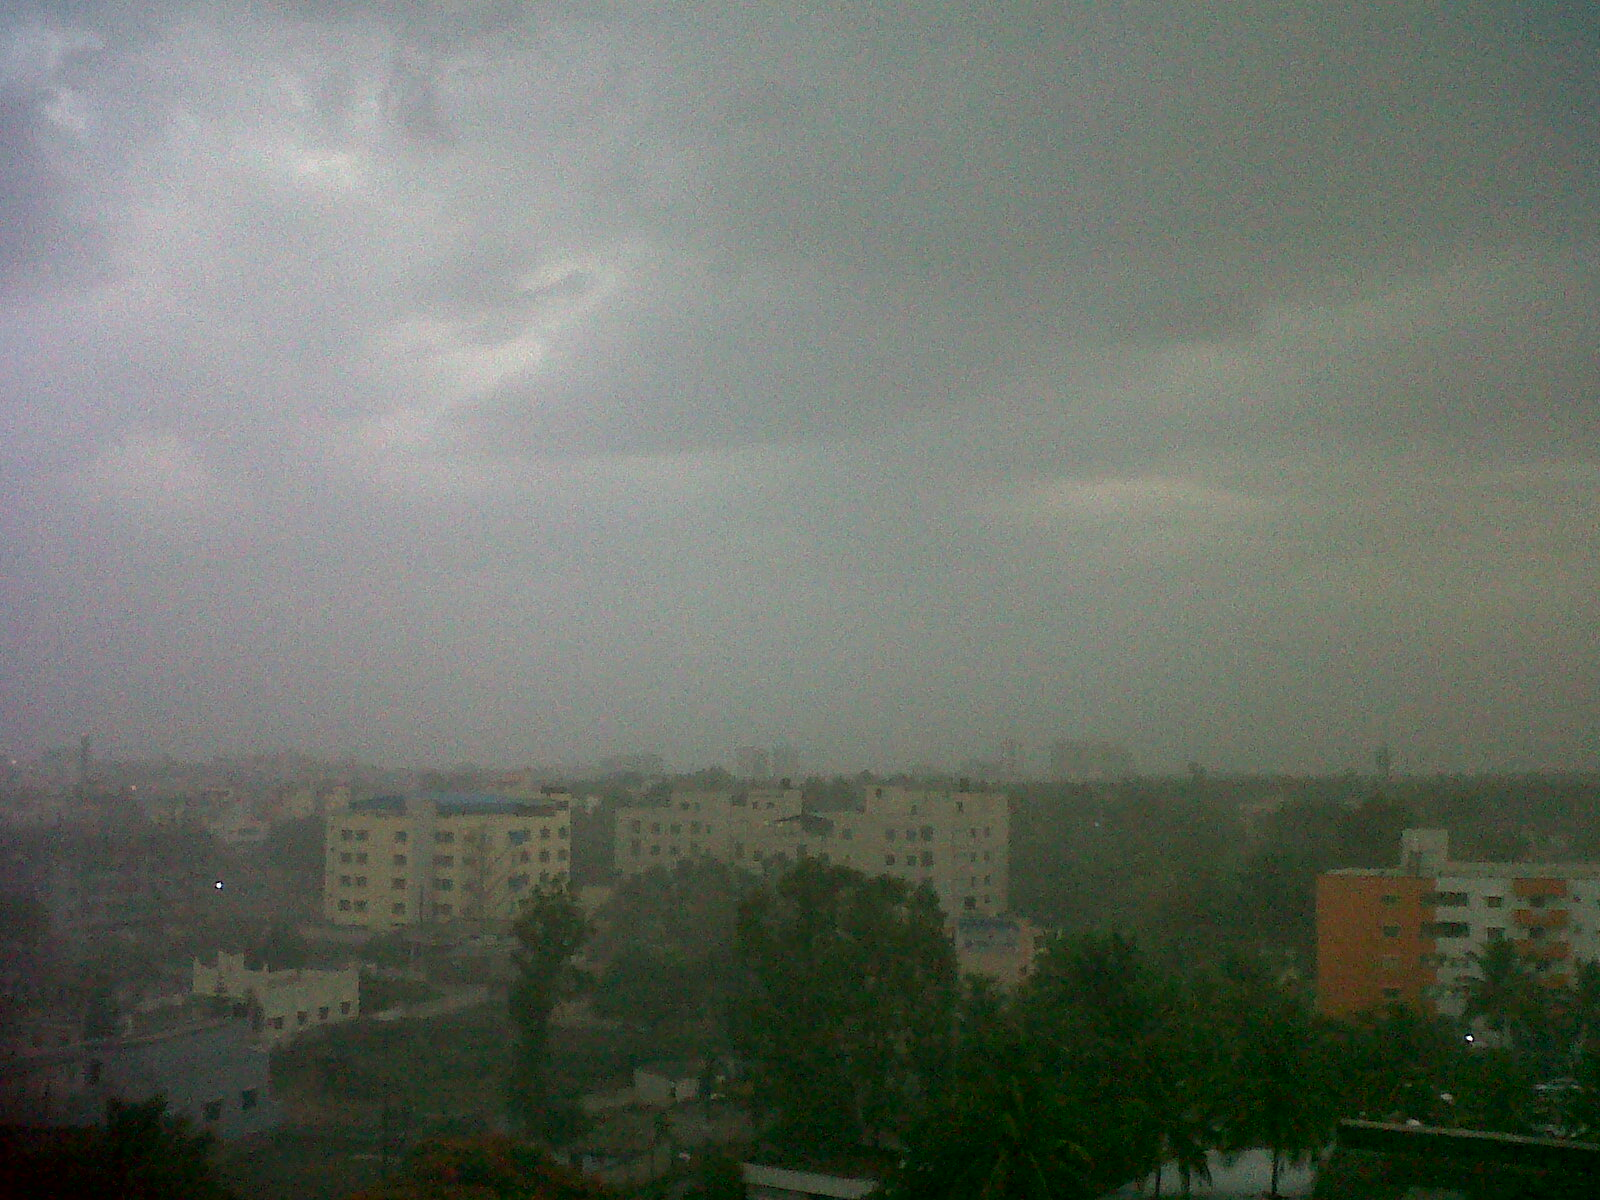 bangalore weather Find bangalore weather latest news, videos & pictures on bangalore weather and see latest updates, news, information from ndtvcom explore more on bangalore weather.